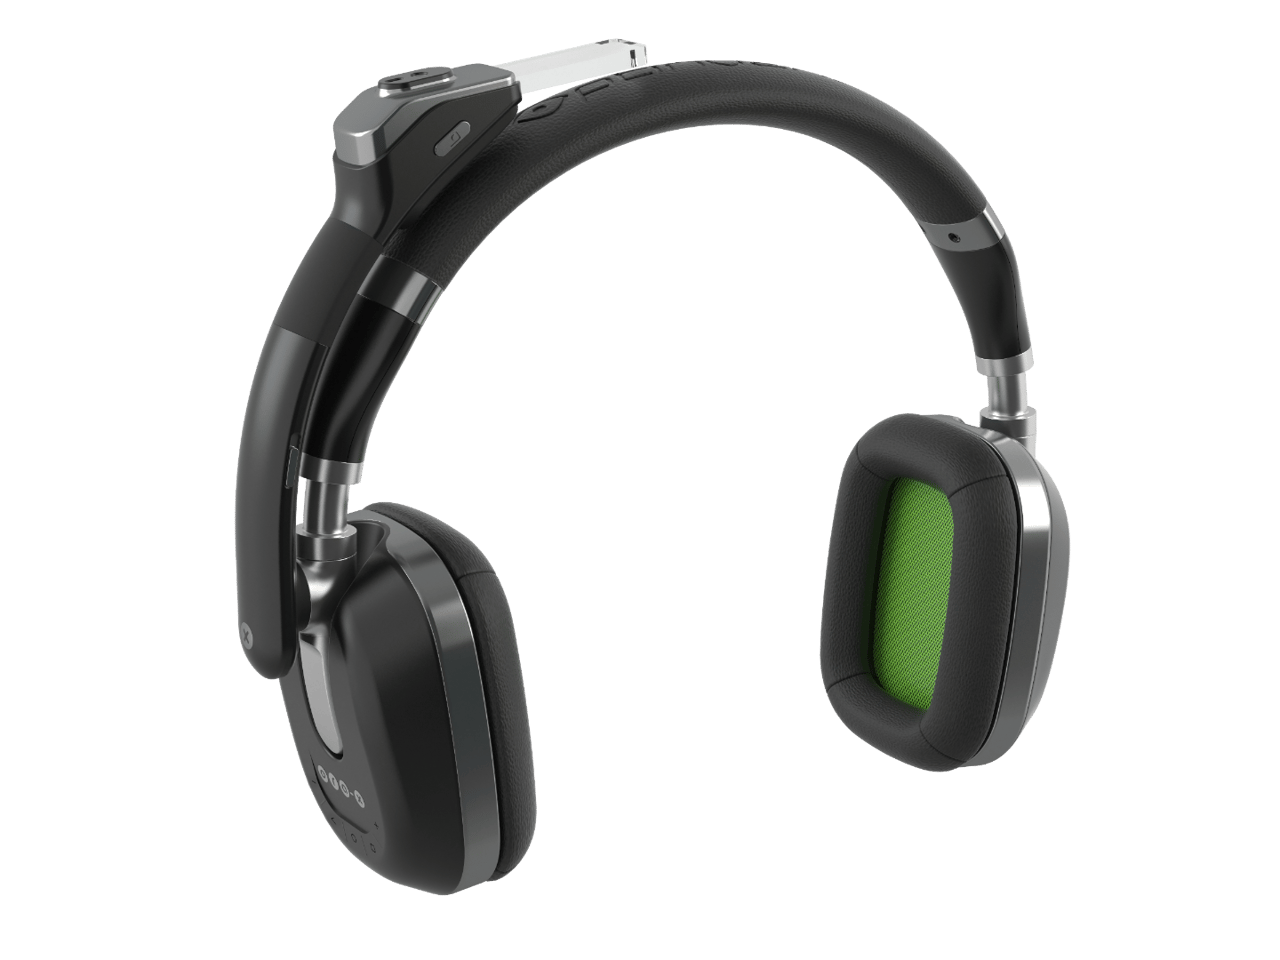 The Ora-X headphones feature a display arm that can be adjusted up to 180 degrees